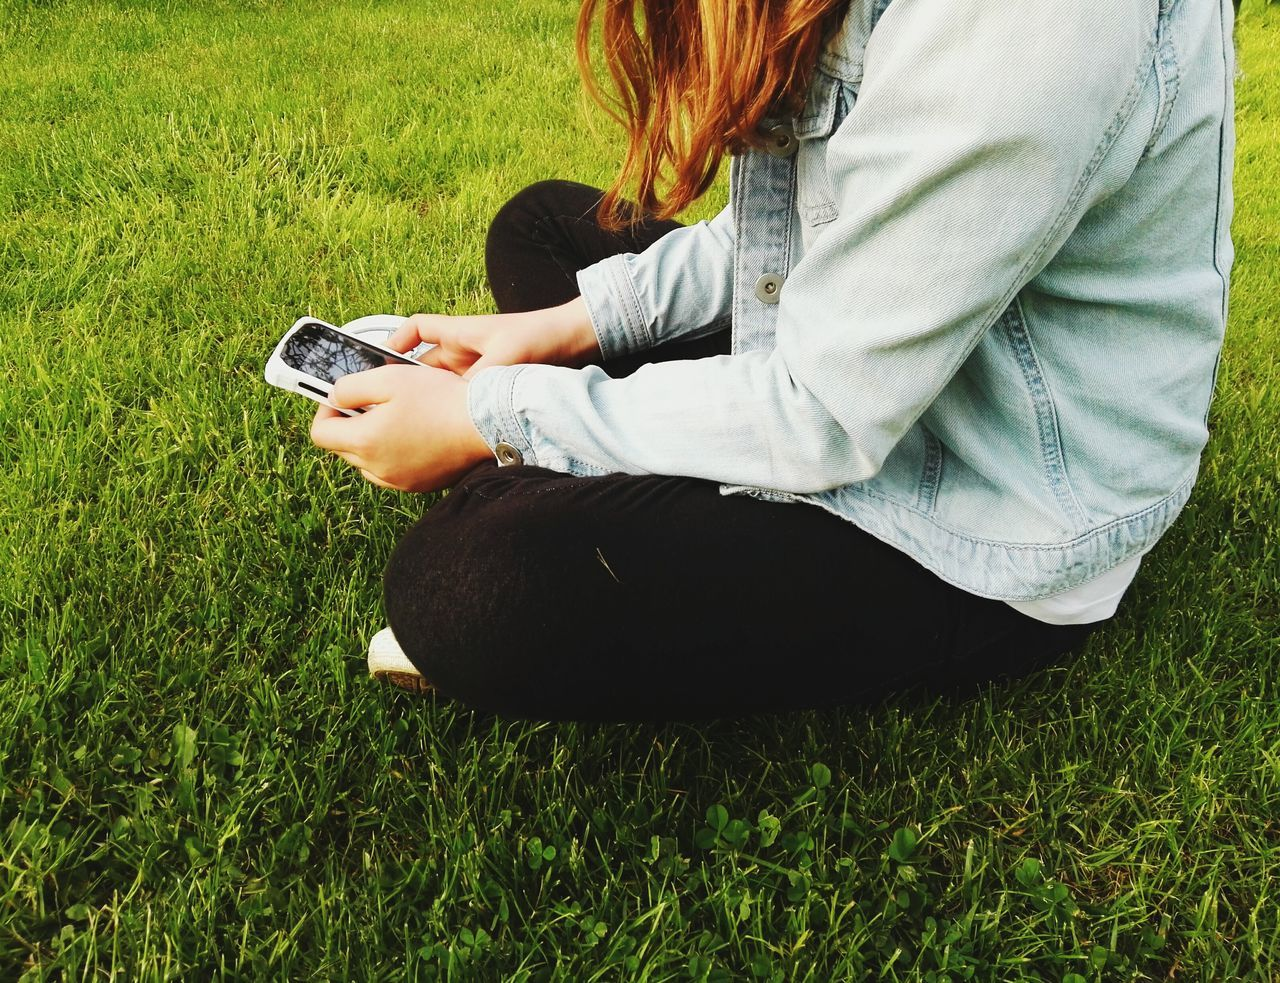 Technology and nature Grass One Person One Woman Only People Only Women Casual Clothing Leisure Activity Human Body Part One Young Woman Only Young Women Sitting Relaxation Real People Outdoors Technology And Nature Technology Photography Smartphone Photography Childhood Child And Technology